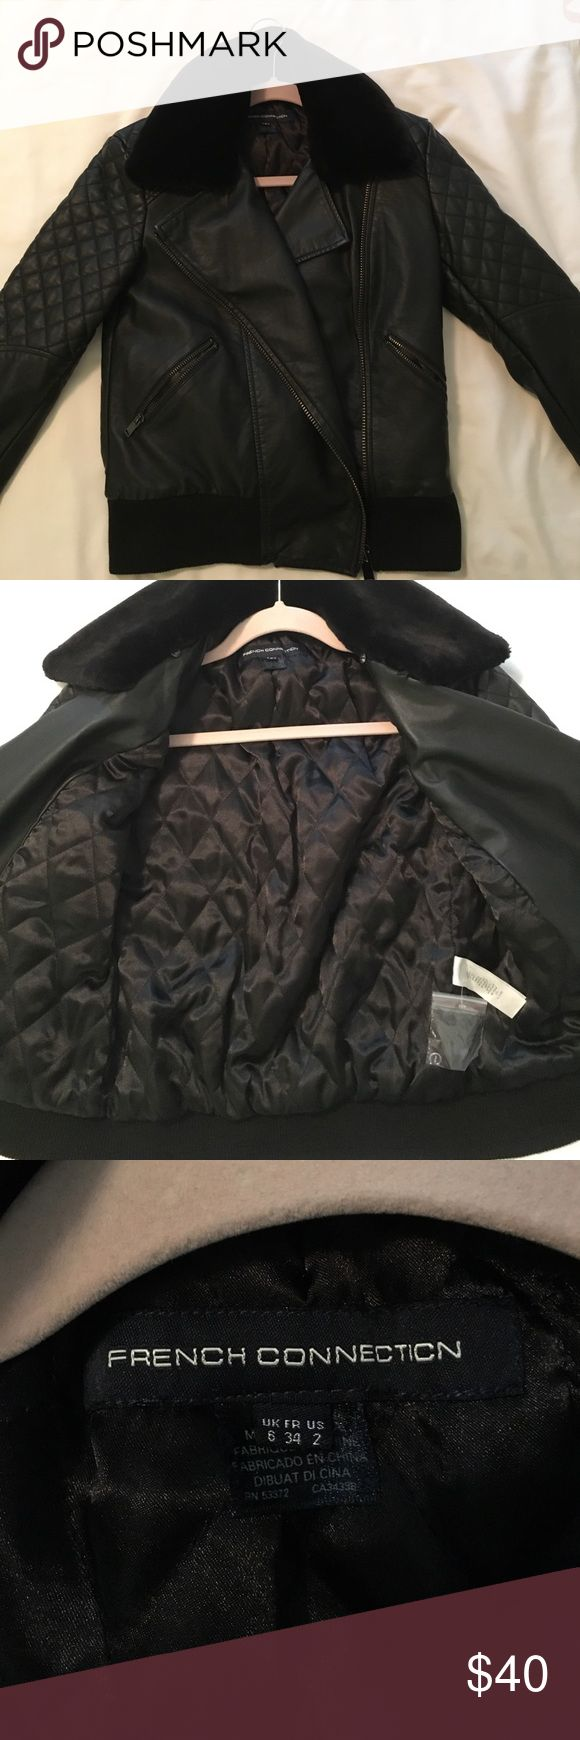 French Connection Black faux leather jacket Re-poshing. The sleeves were too long for me so I'm selling. Really cute jacket! Has removable faux fur collar and has quilted detail on the shoulders. French Connection Jackets & Coats